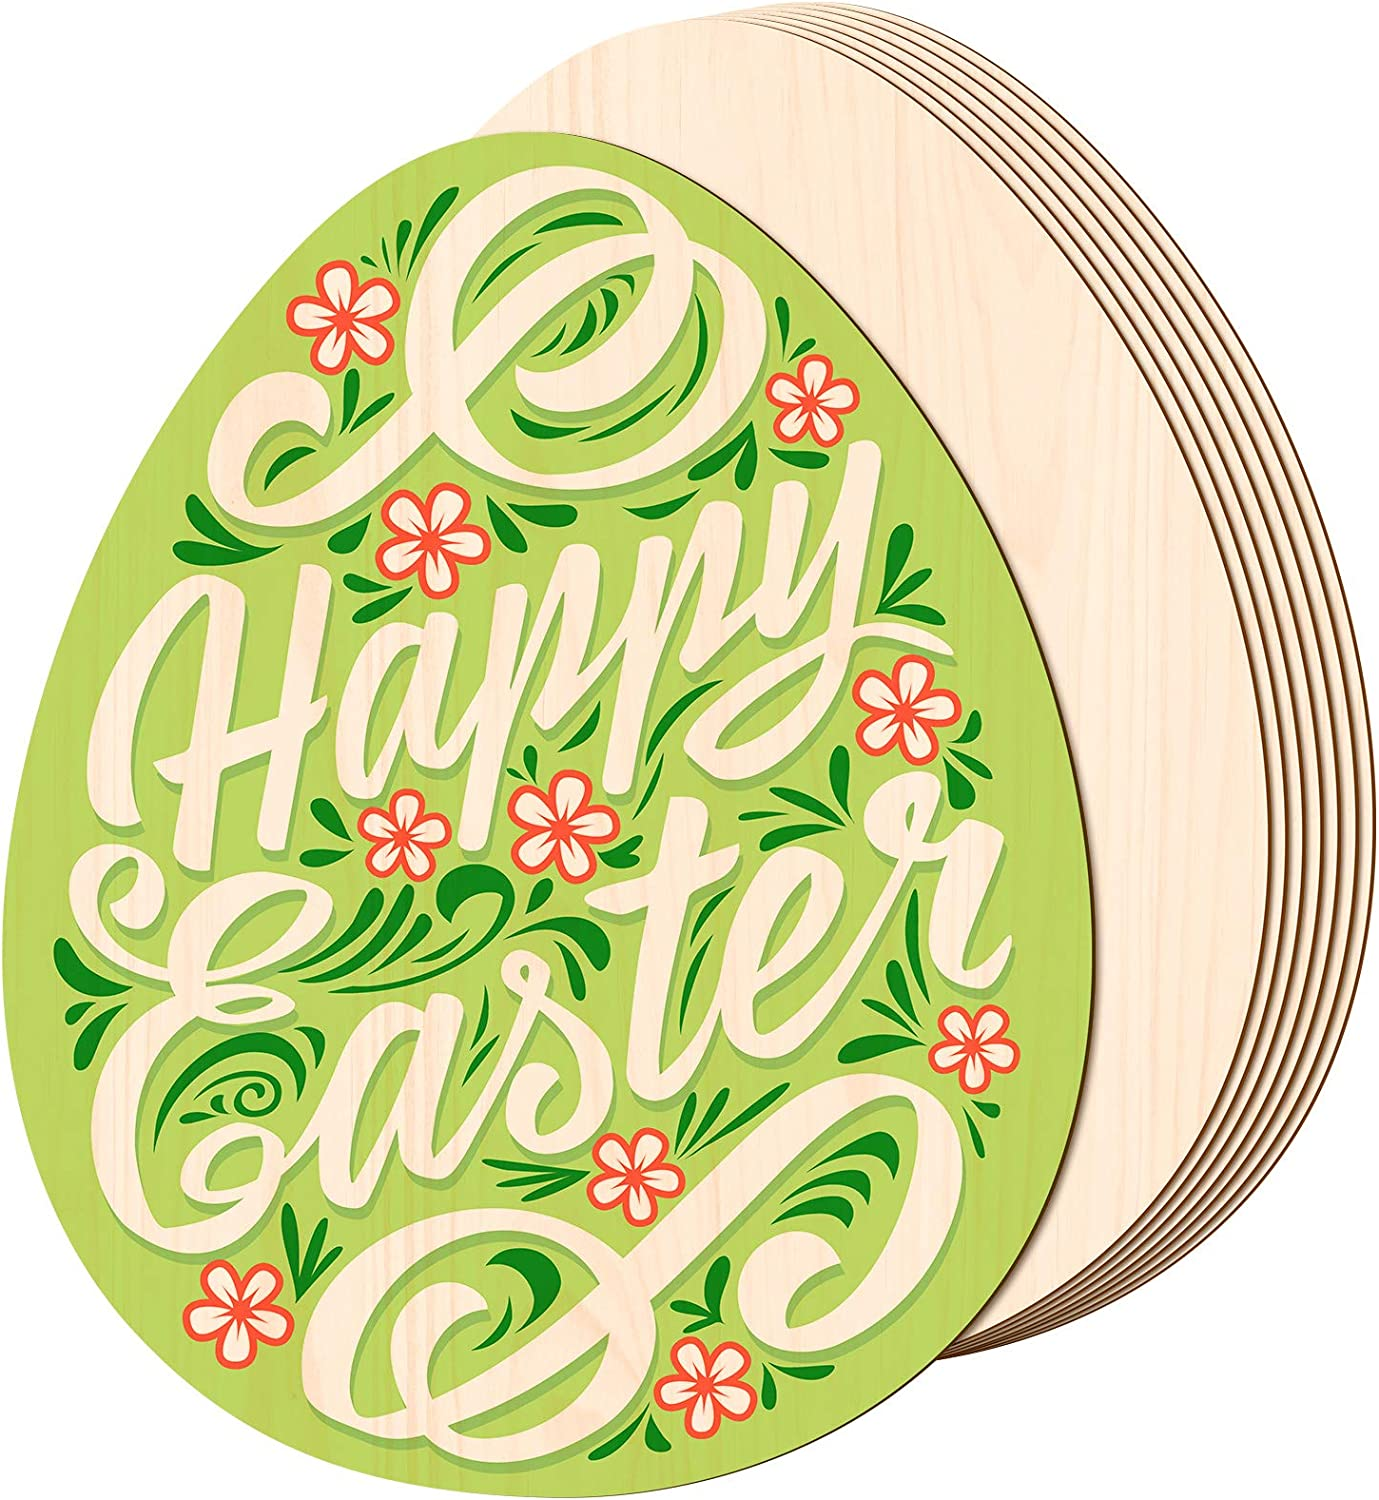 8 Pieces 11 Inch Wooden Easter Egg Cutouts Unfinished Wooden Egg Slices Easter Wooden Egg Discs Blank Egg Cutouts Ornaments for Holiday Hanging Embellishments, Painting, DIY Crafts